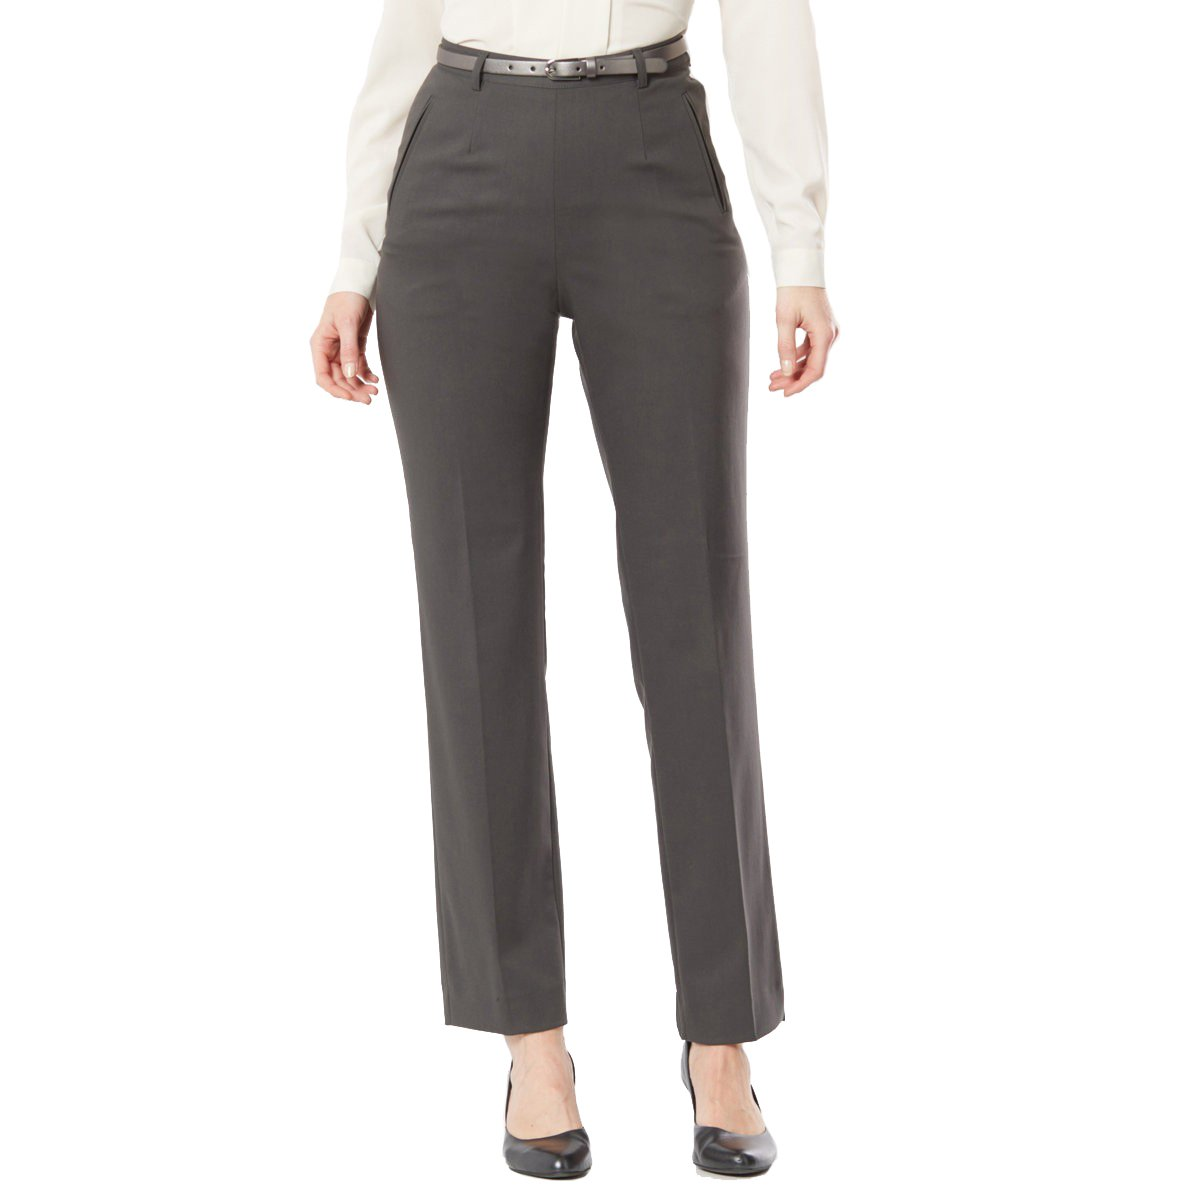 La Redoute Womens Straight Trousers Grey Size Us 12 - Fr 42